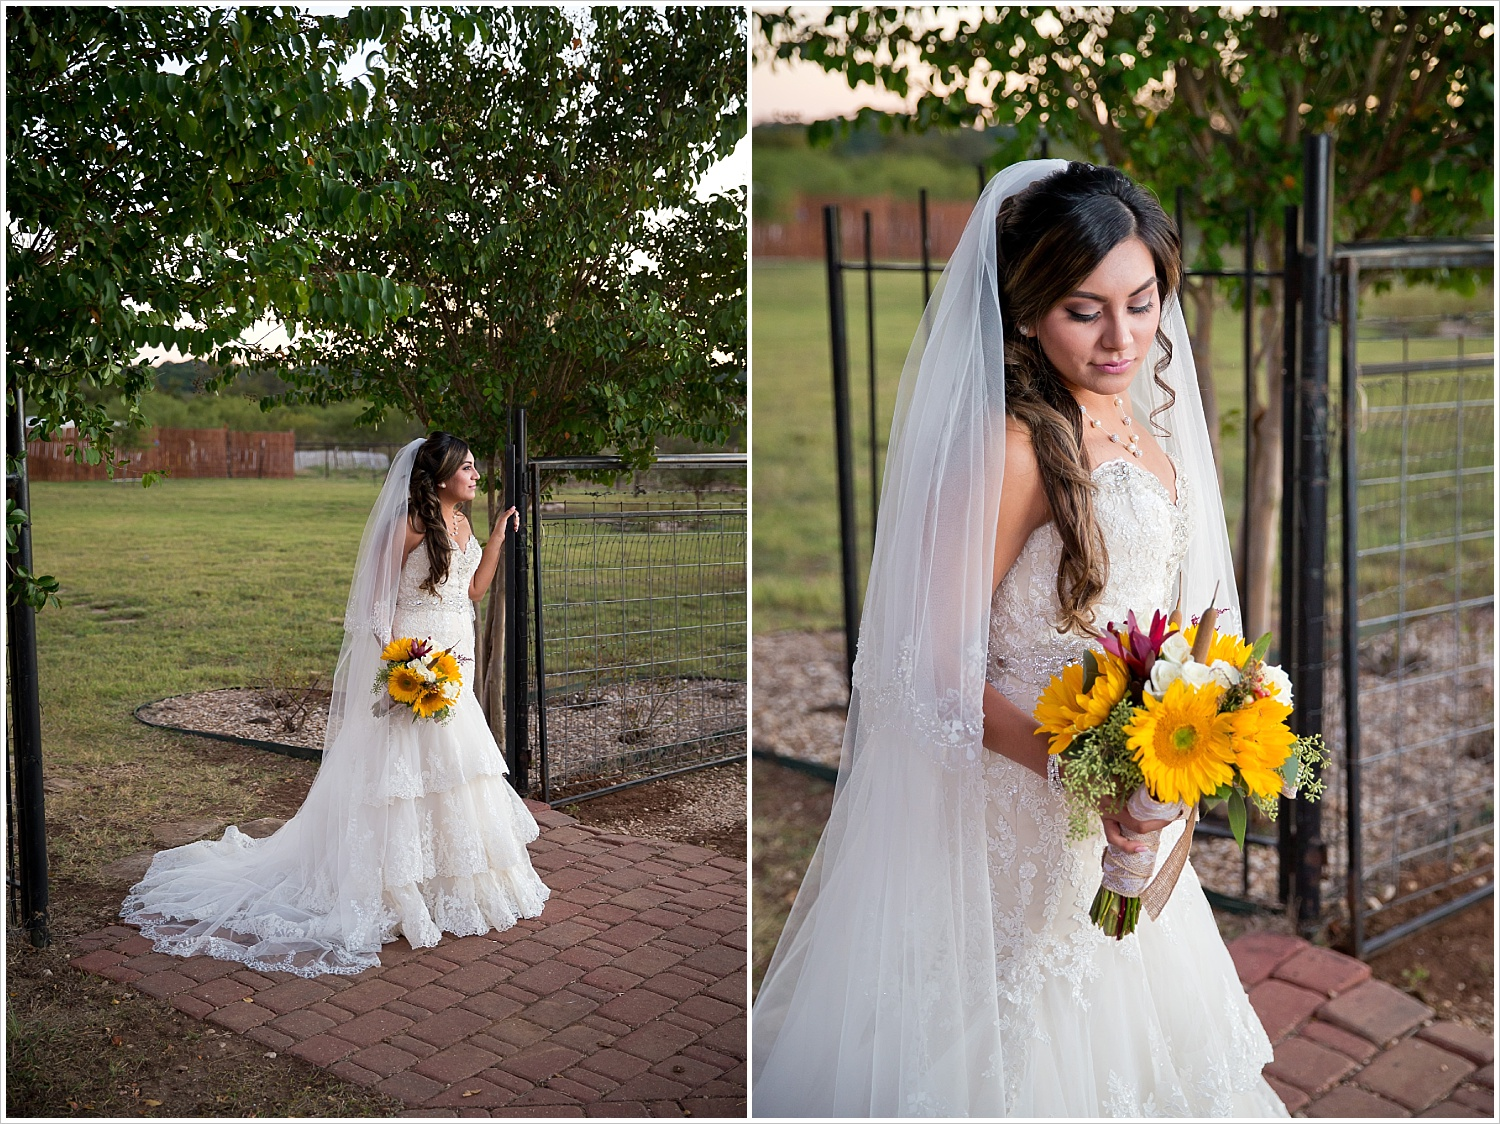 bride poses with sunflower bouquet | Vera Estates in China Springs, Texas | Jason & Melaina Photography